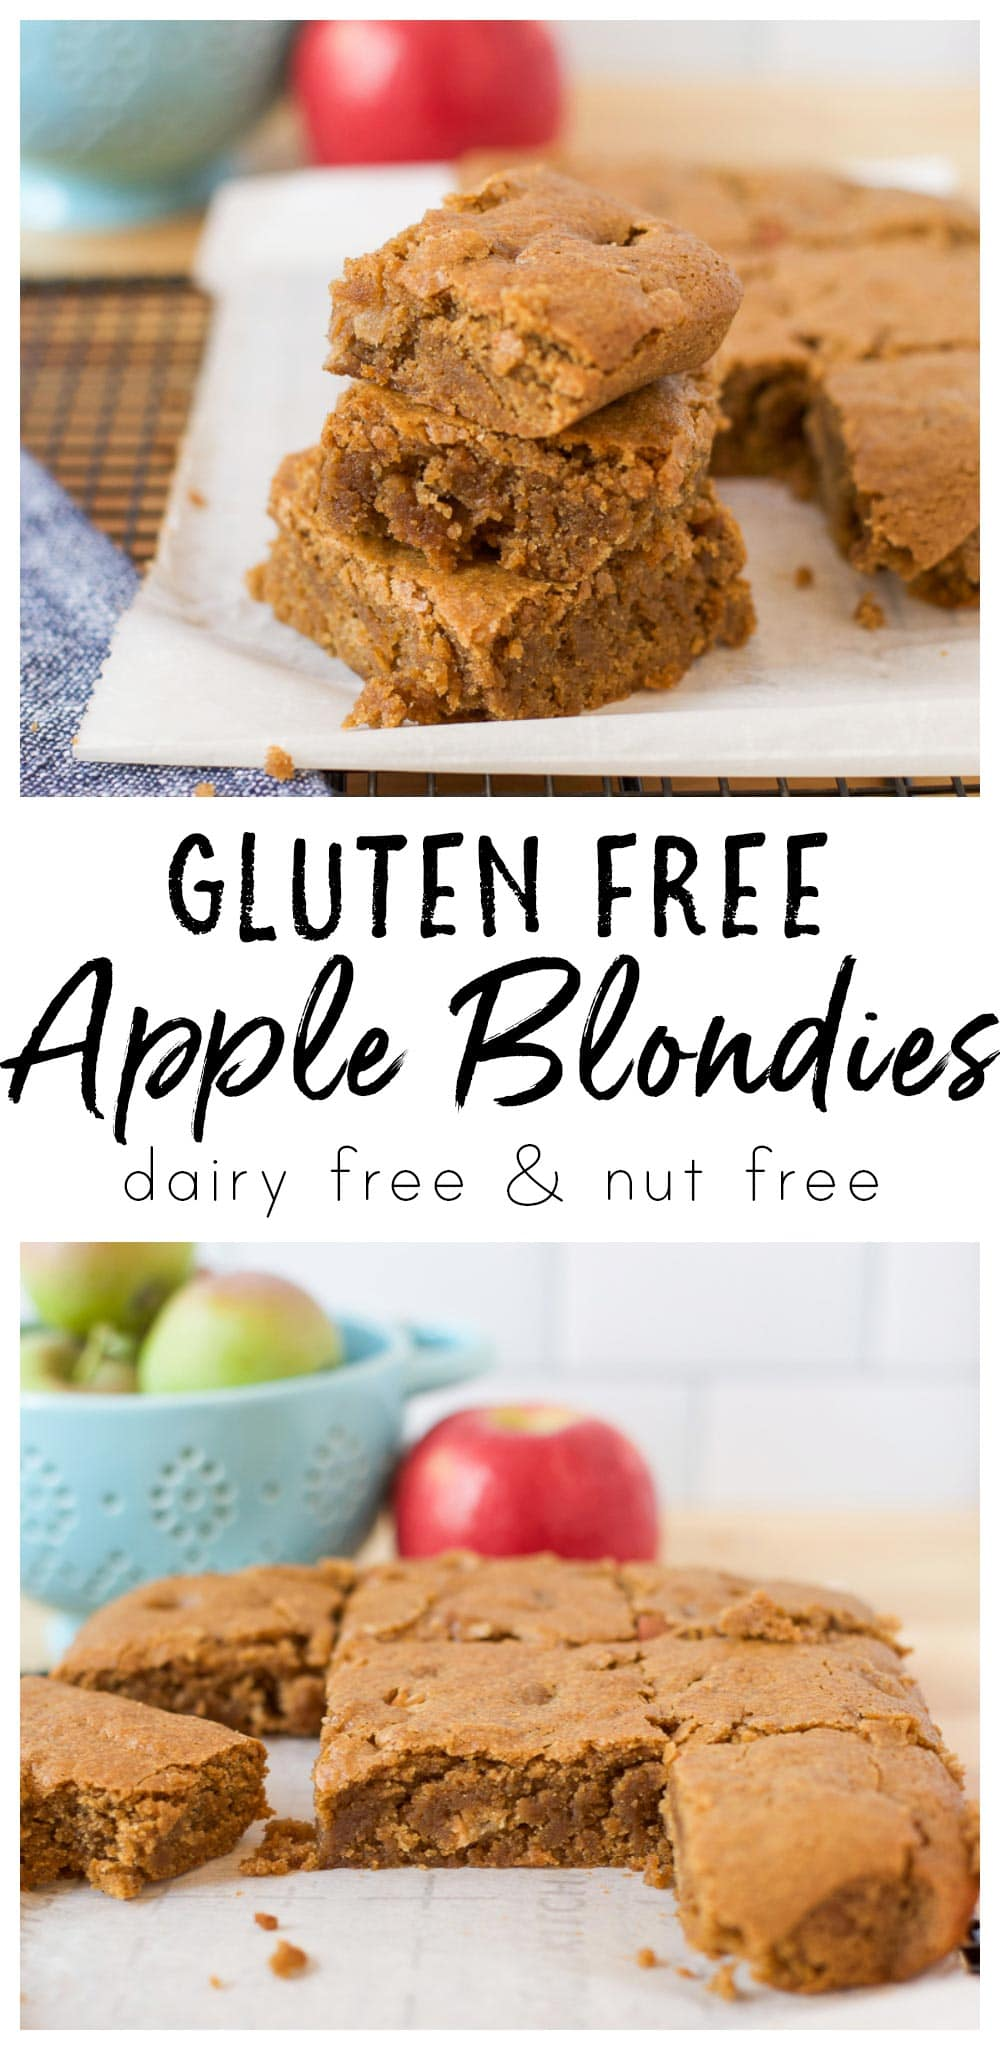 image collage of gluten free apple blondies